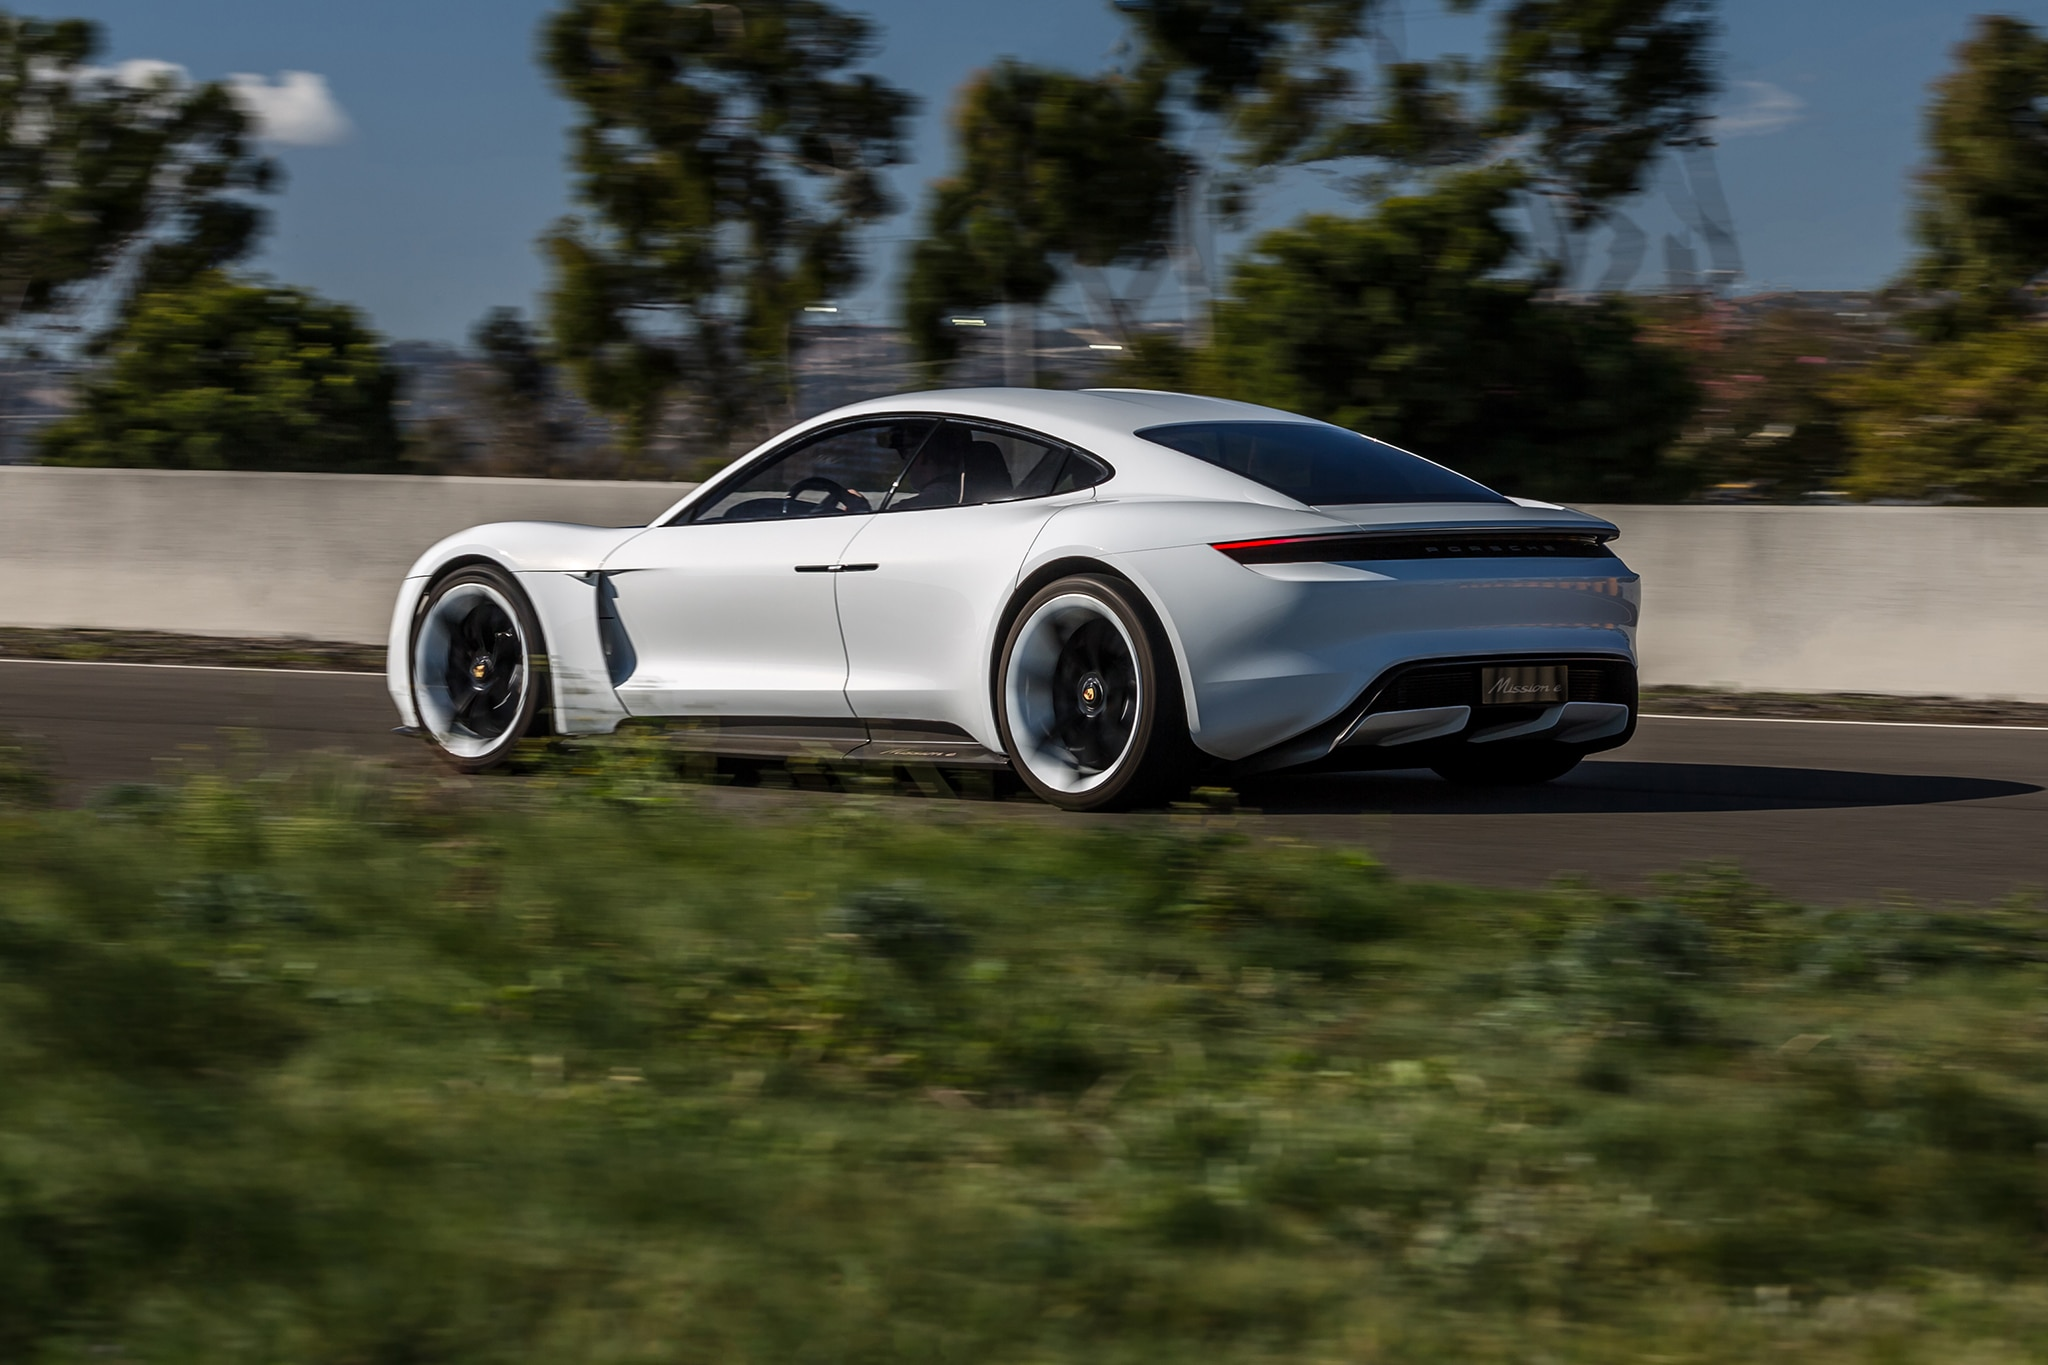 Porsche Mission E to be called Porsche Taycan